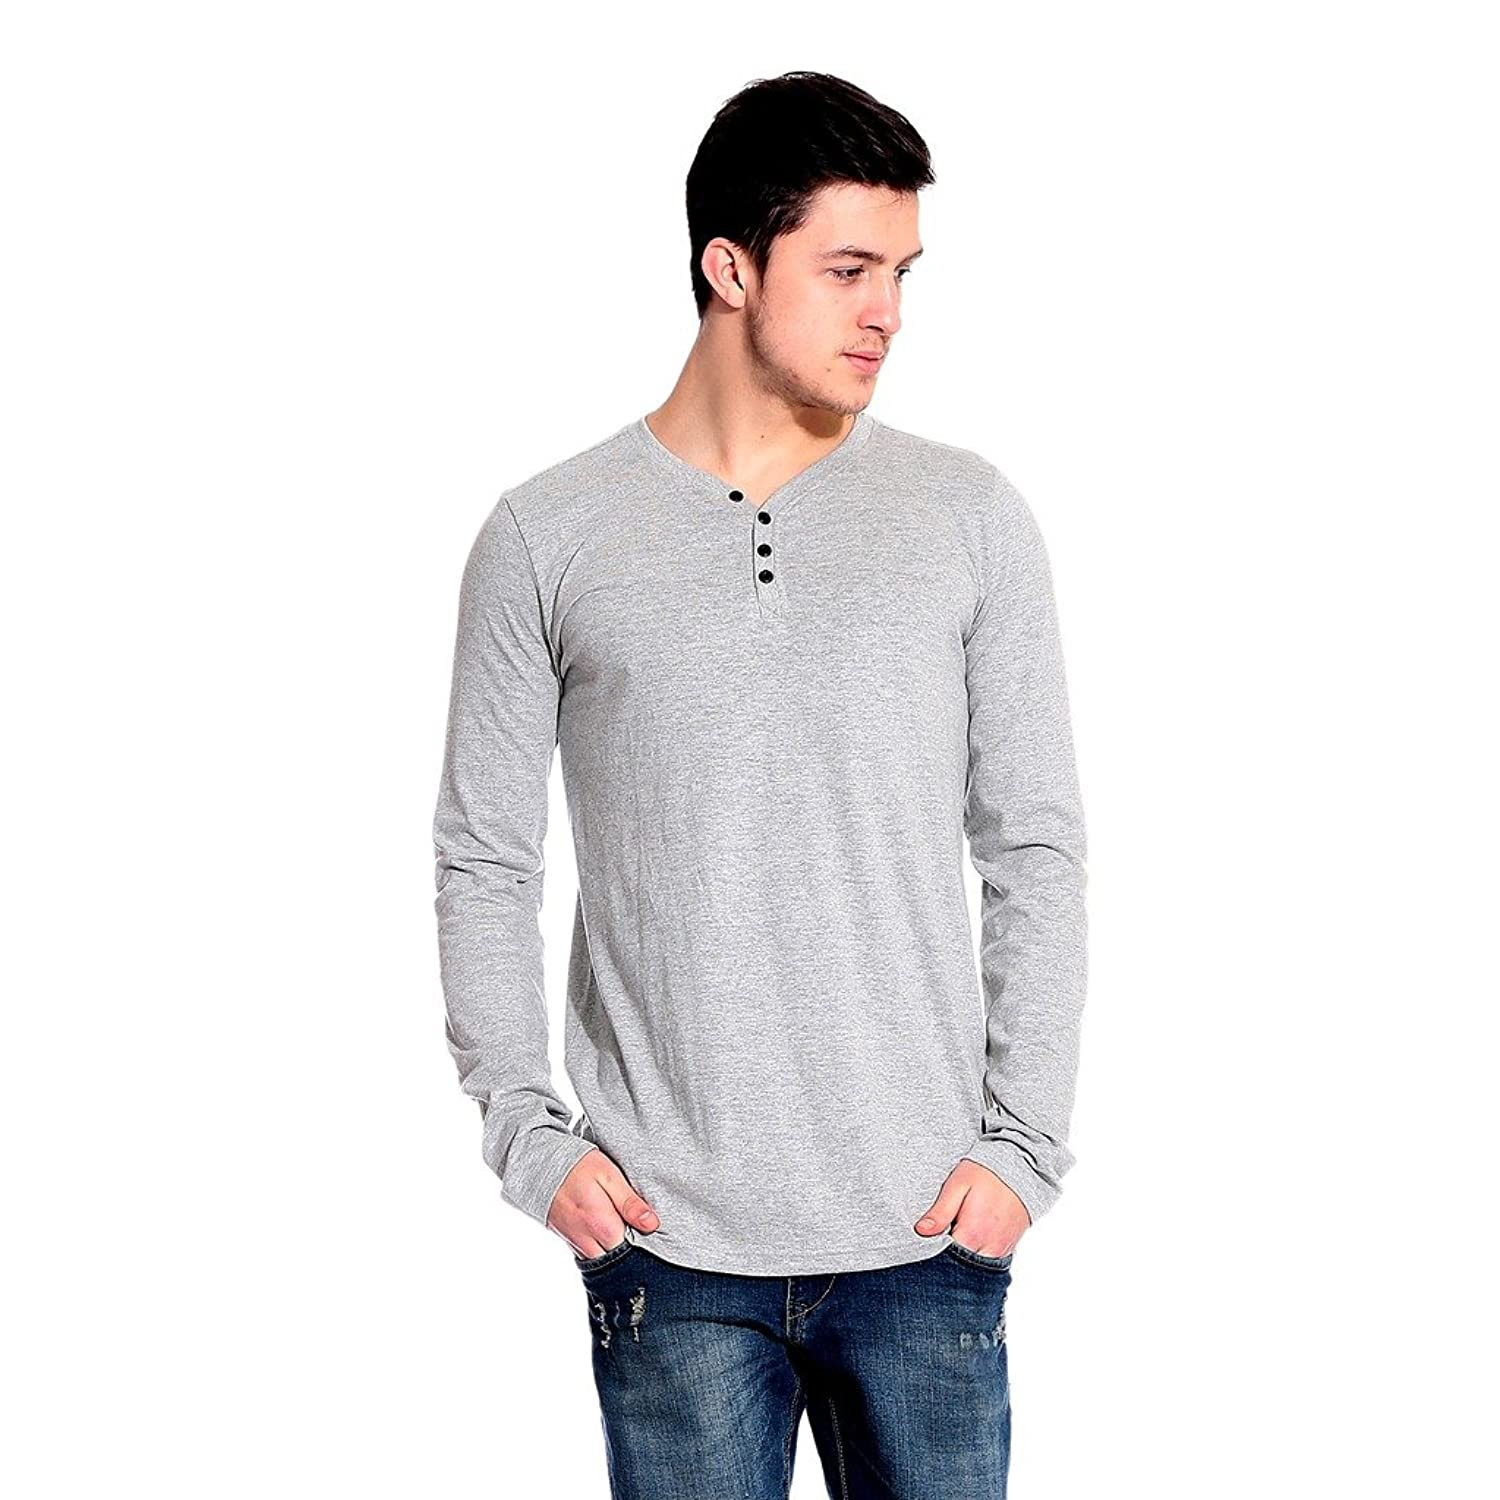 Flat 60% off On Clothing Top Brands By Amazon | Lemon & Vodka Henley Mens Solid Tshirt @Rs. 299